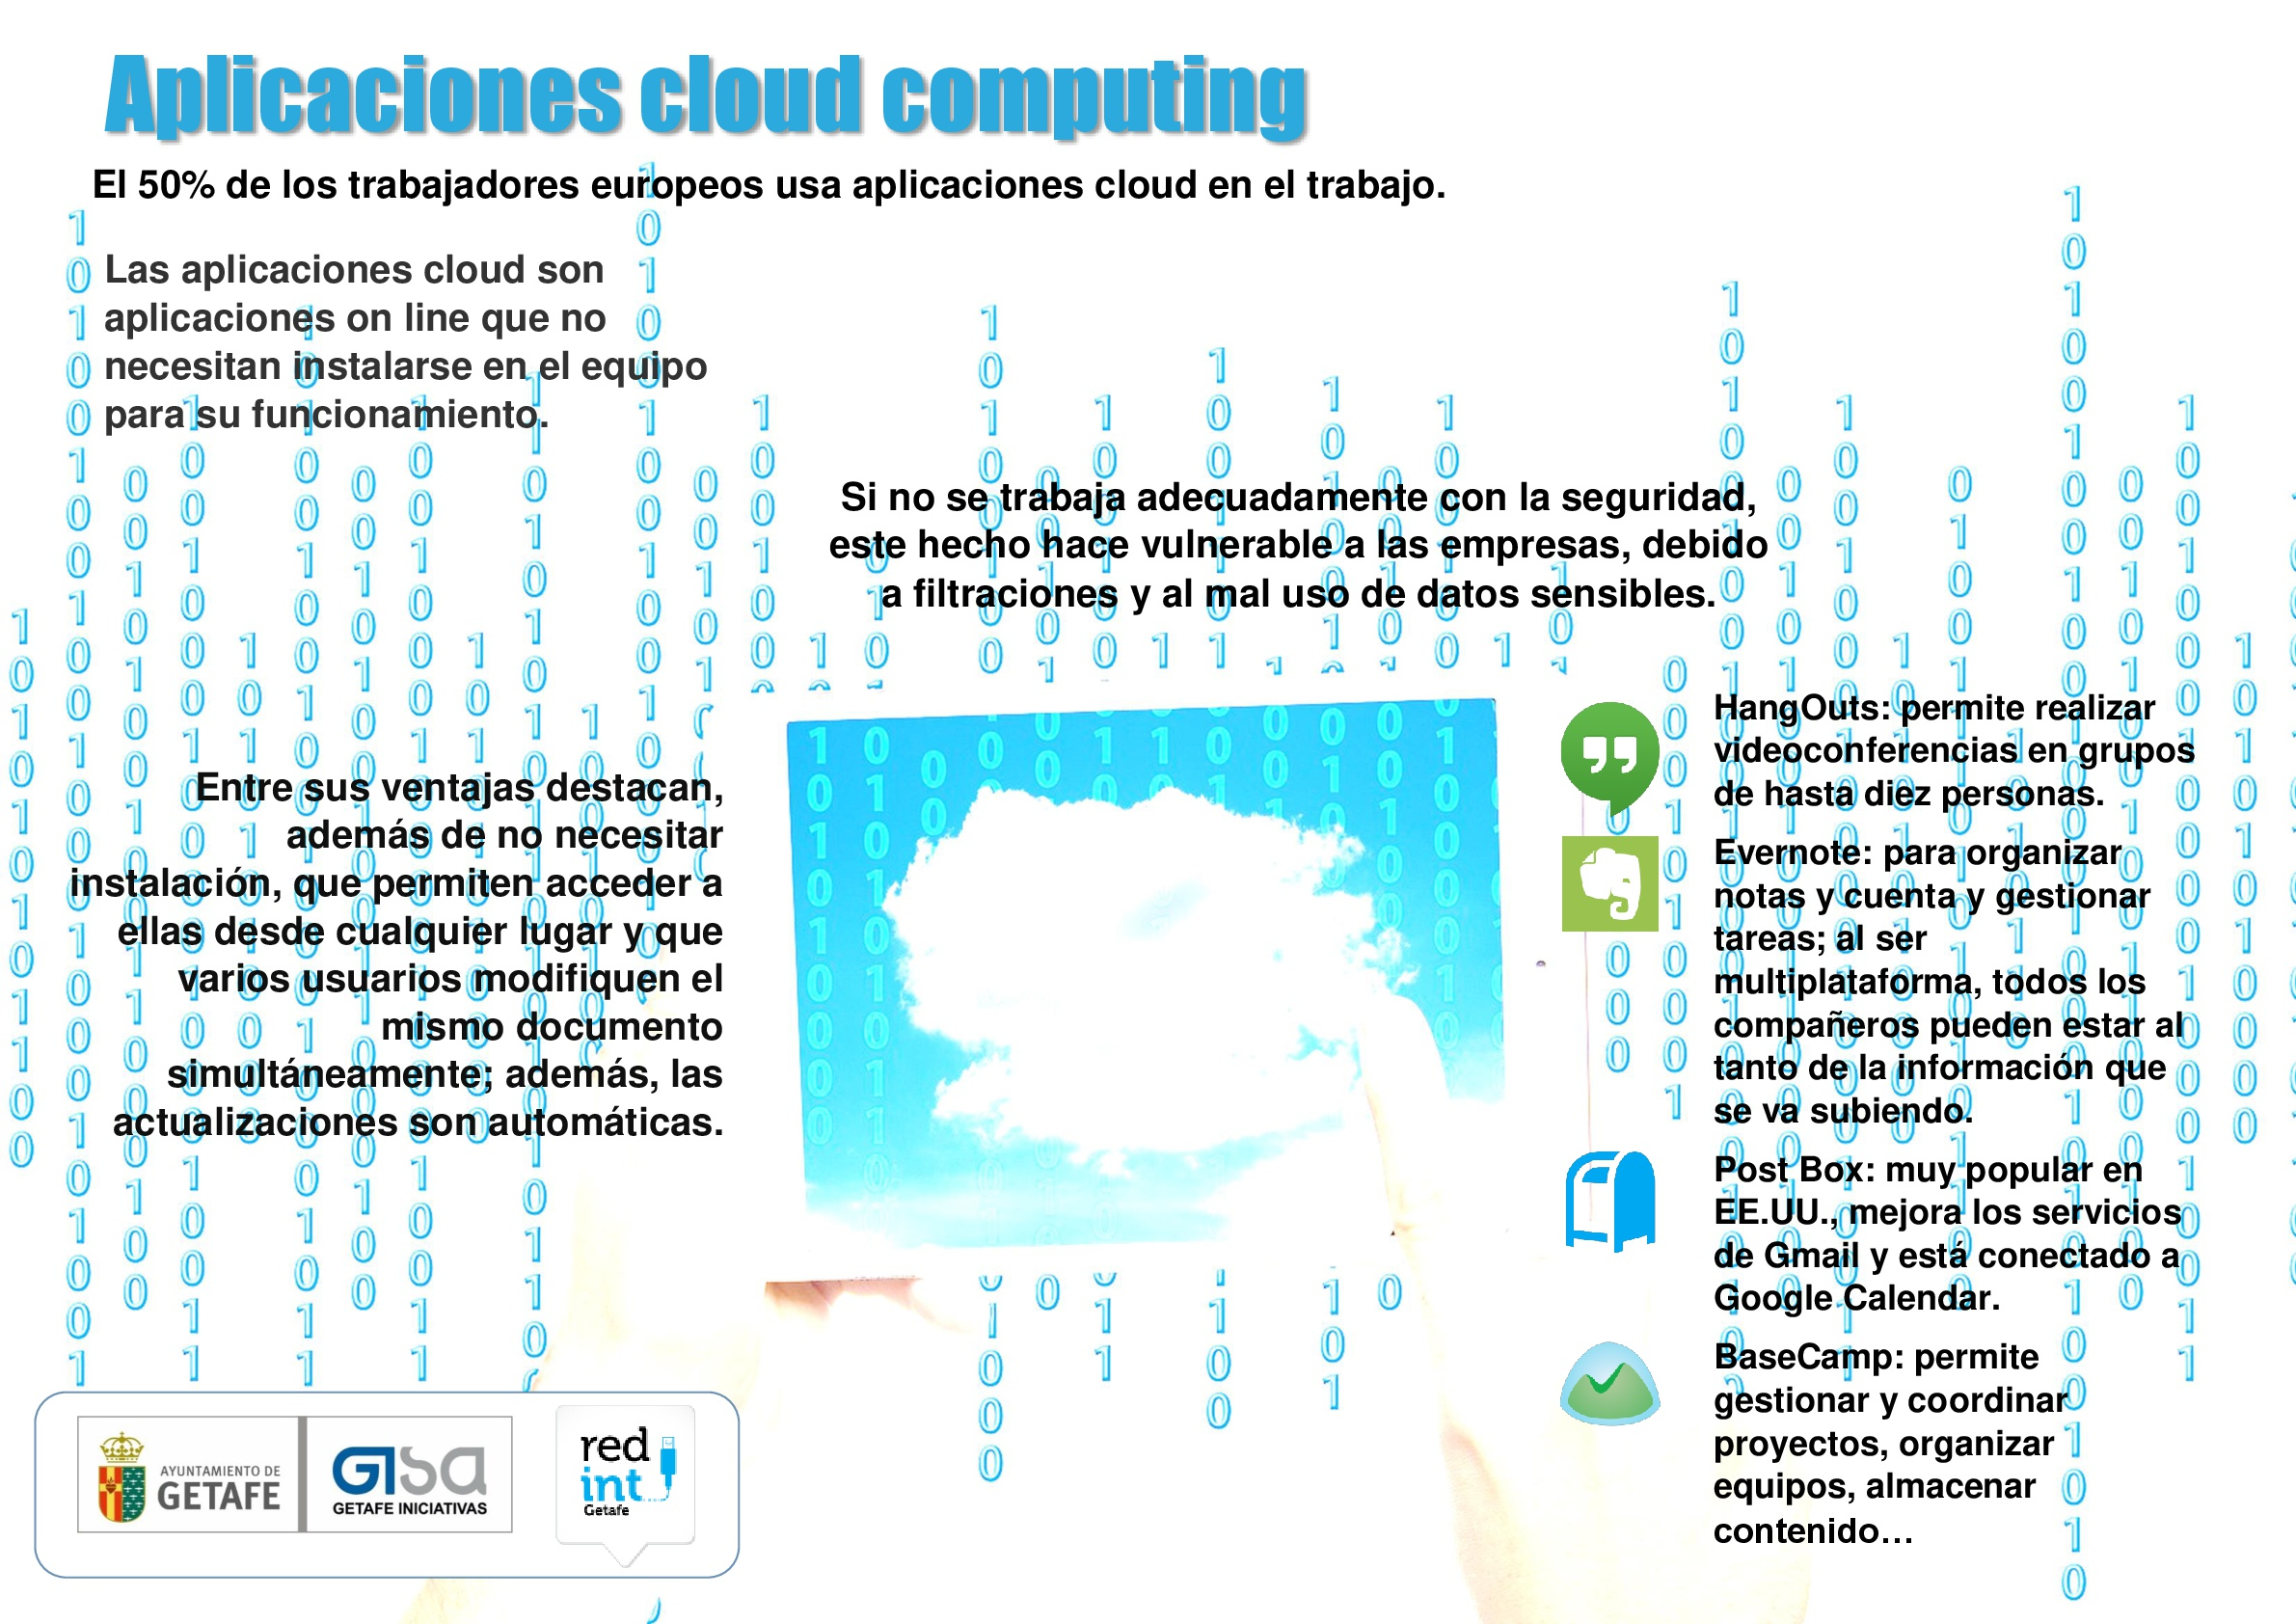 05CLOUDCOMPUTING